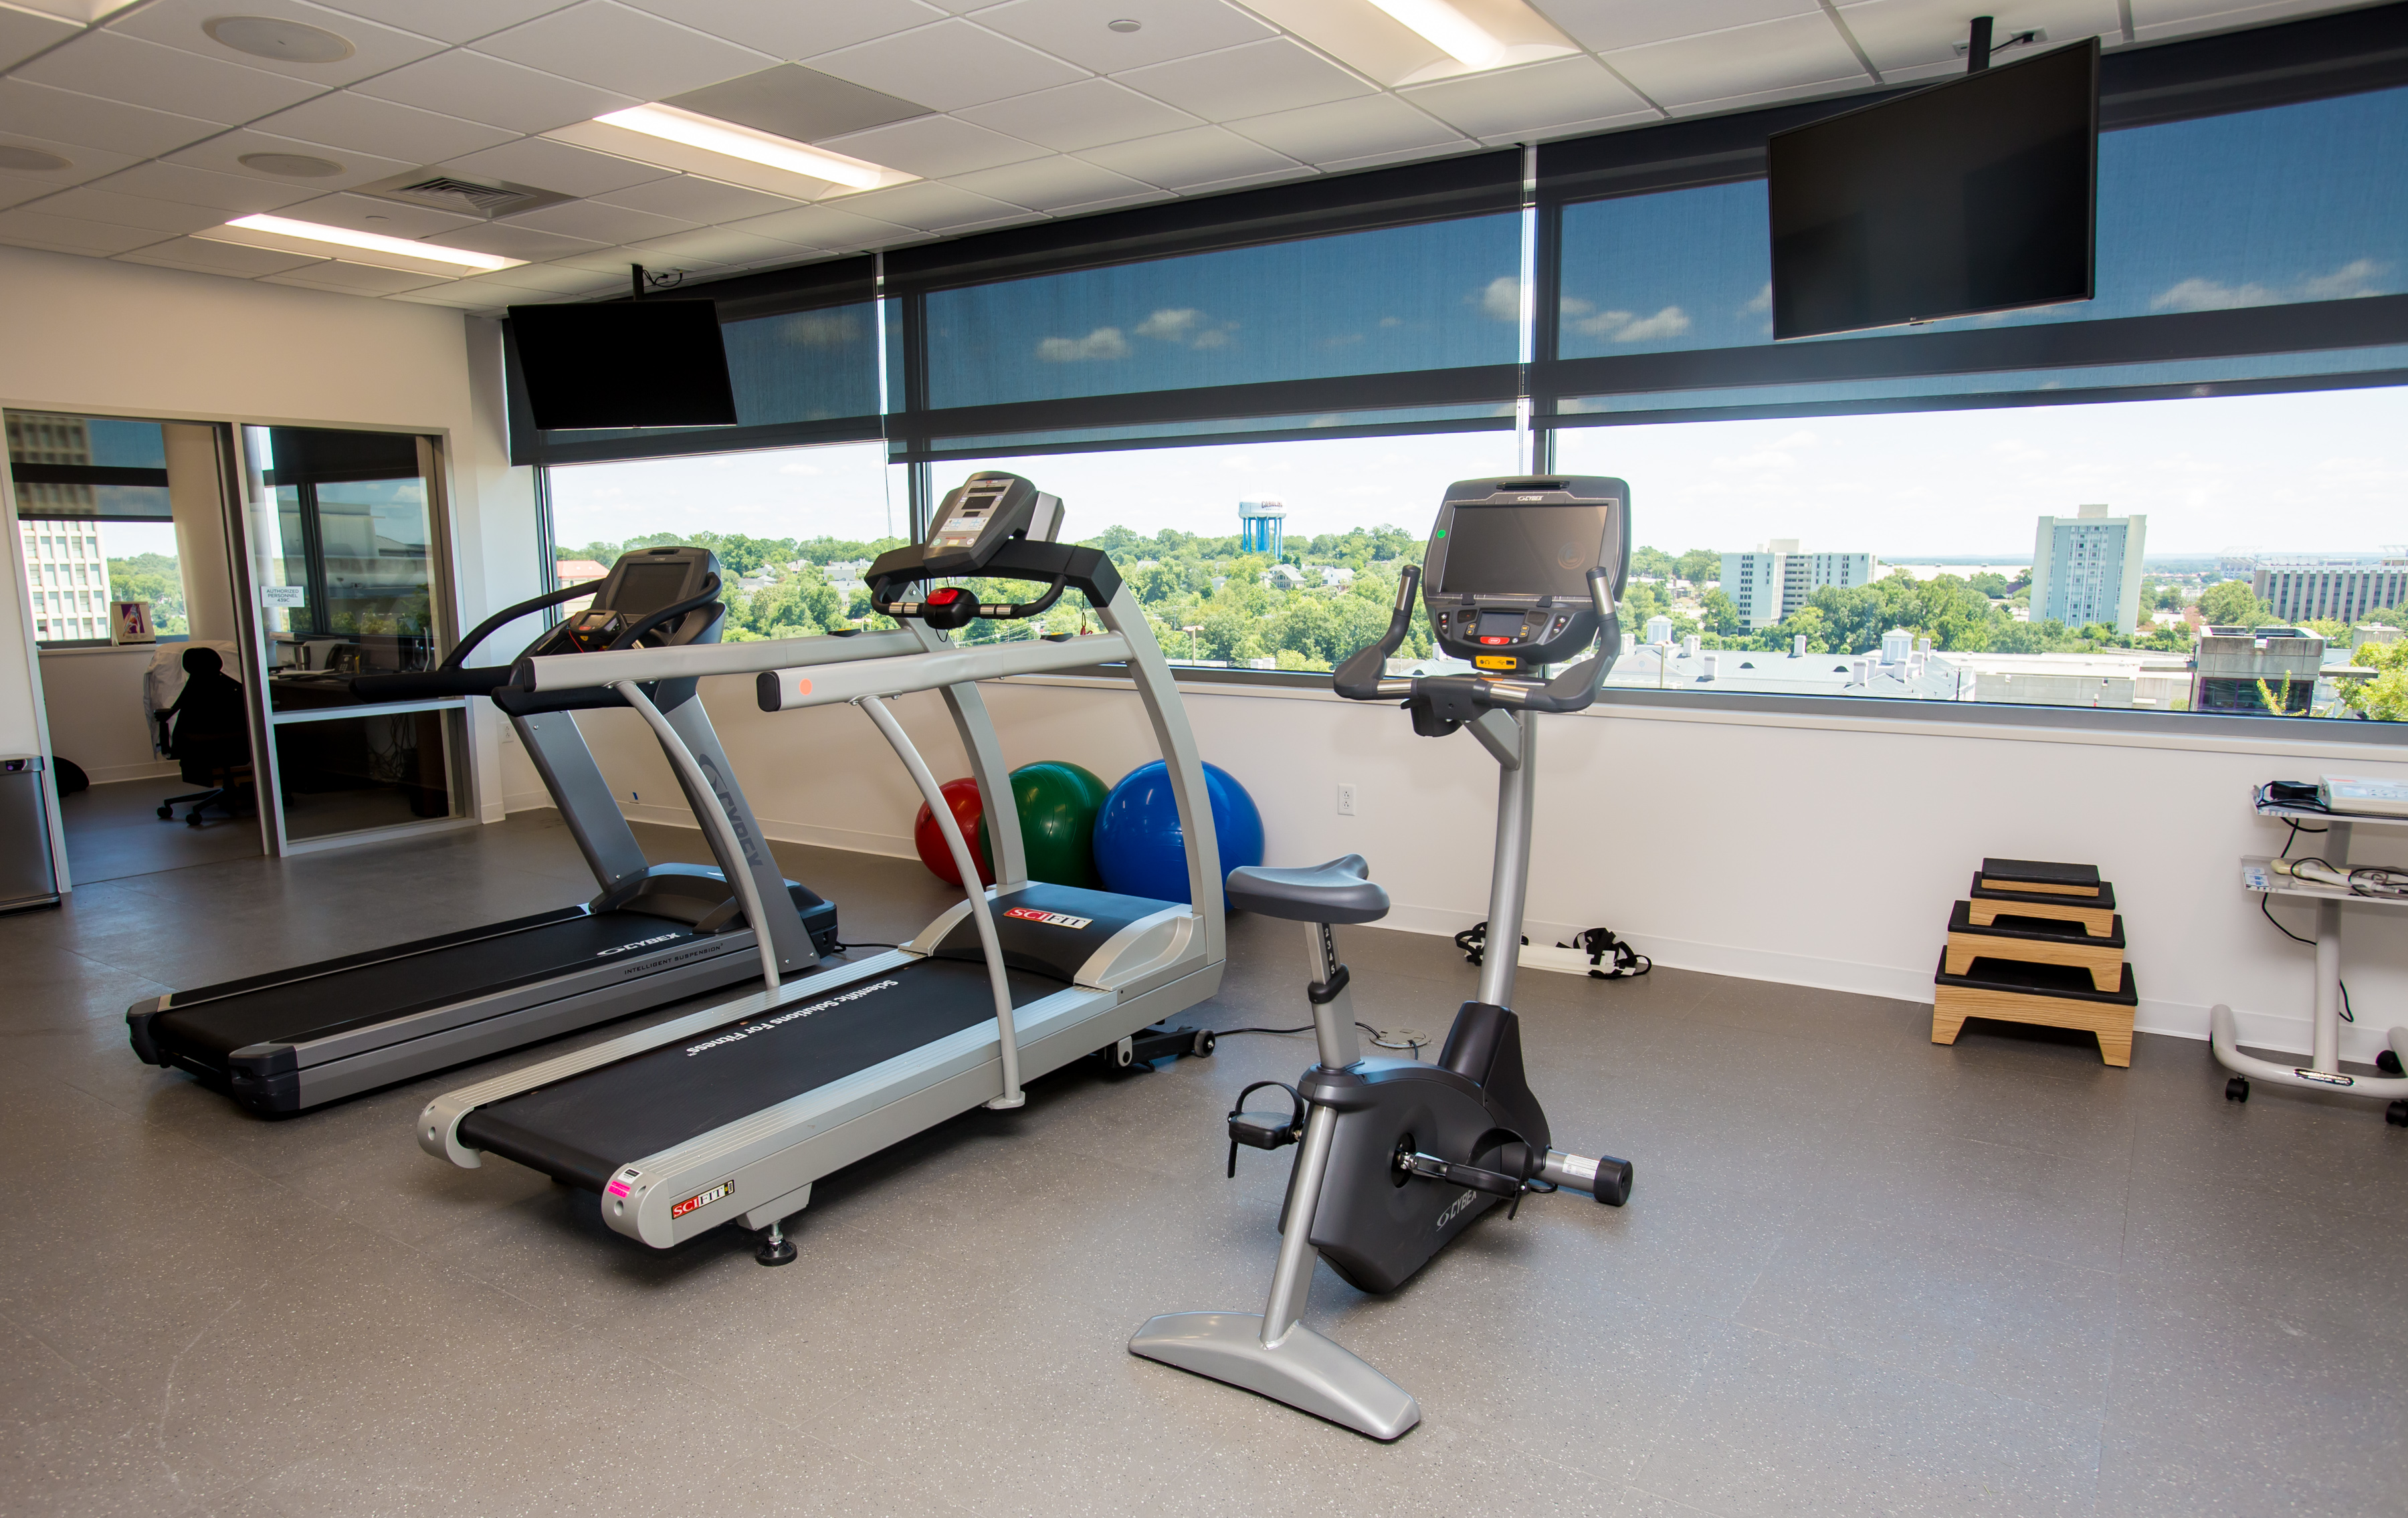 Health south physical therapy - Features Expanded Sports Medicine And Physical Therapy Services Including A Complete Rehab Gym With A Stunning View Of The South Side Of Campus And Williams